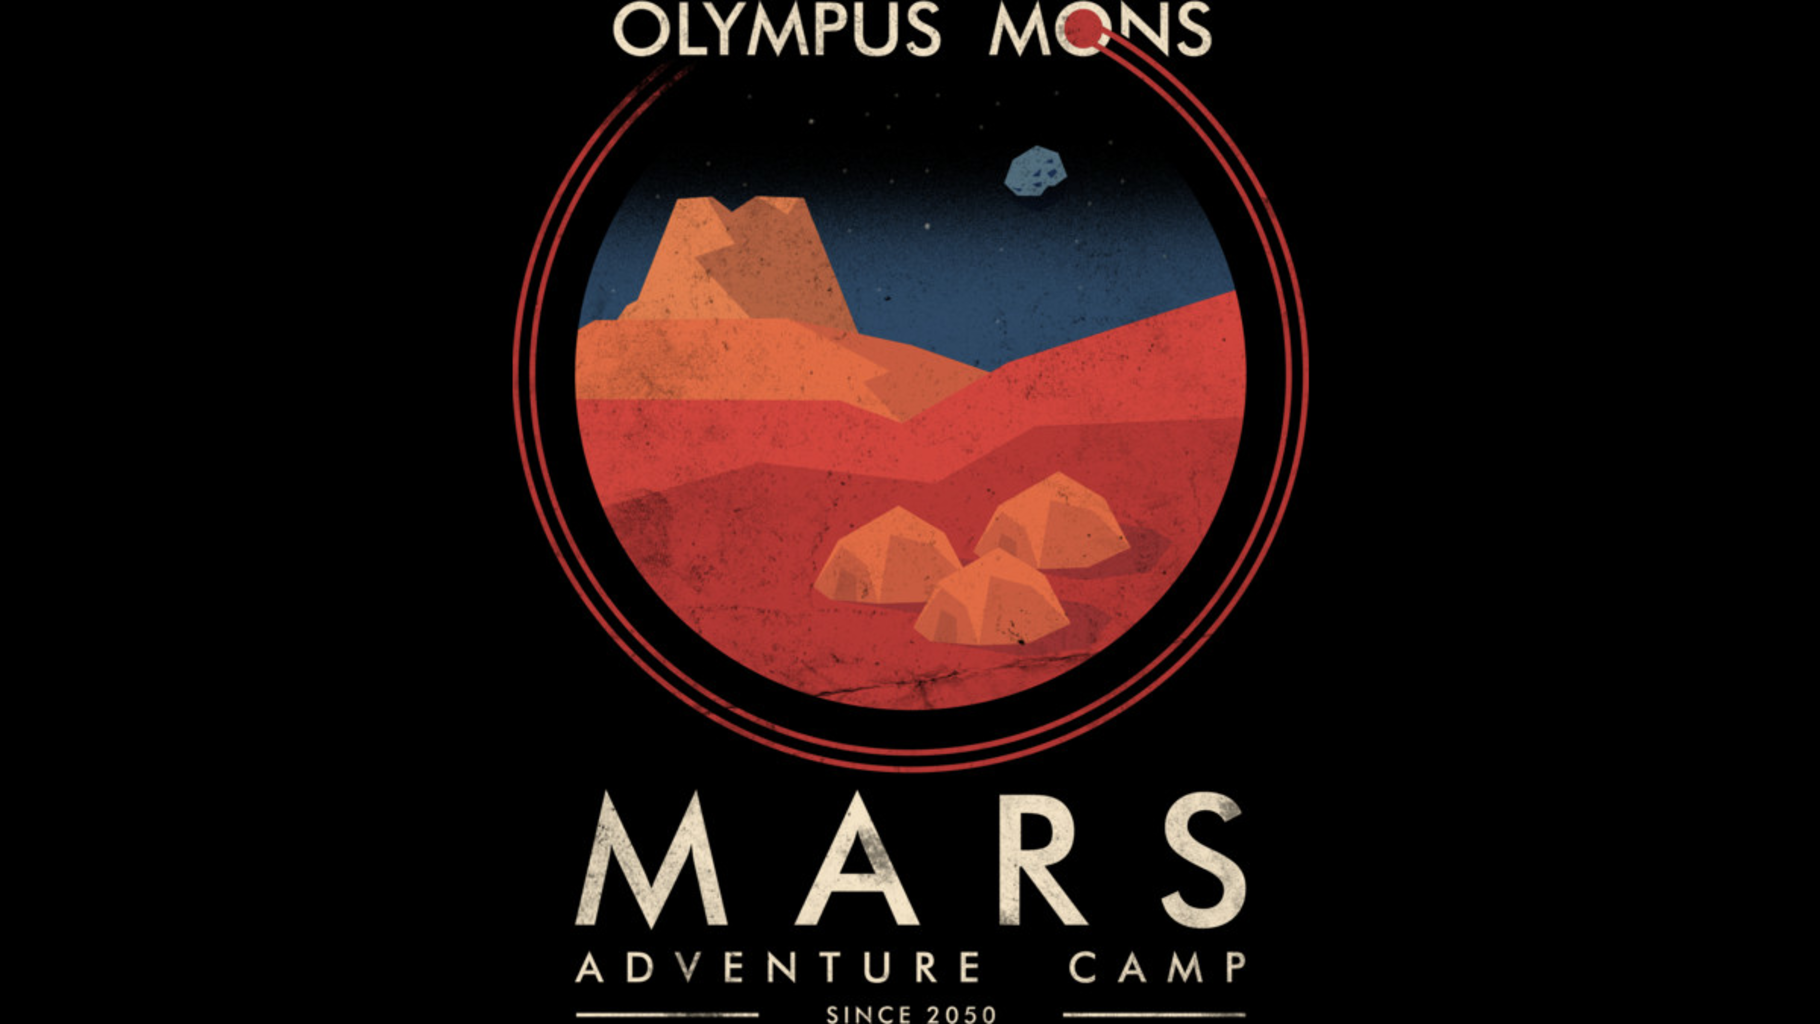 Design by Humans: Mars adventure camp